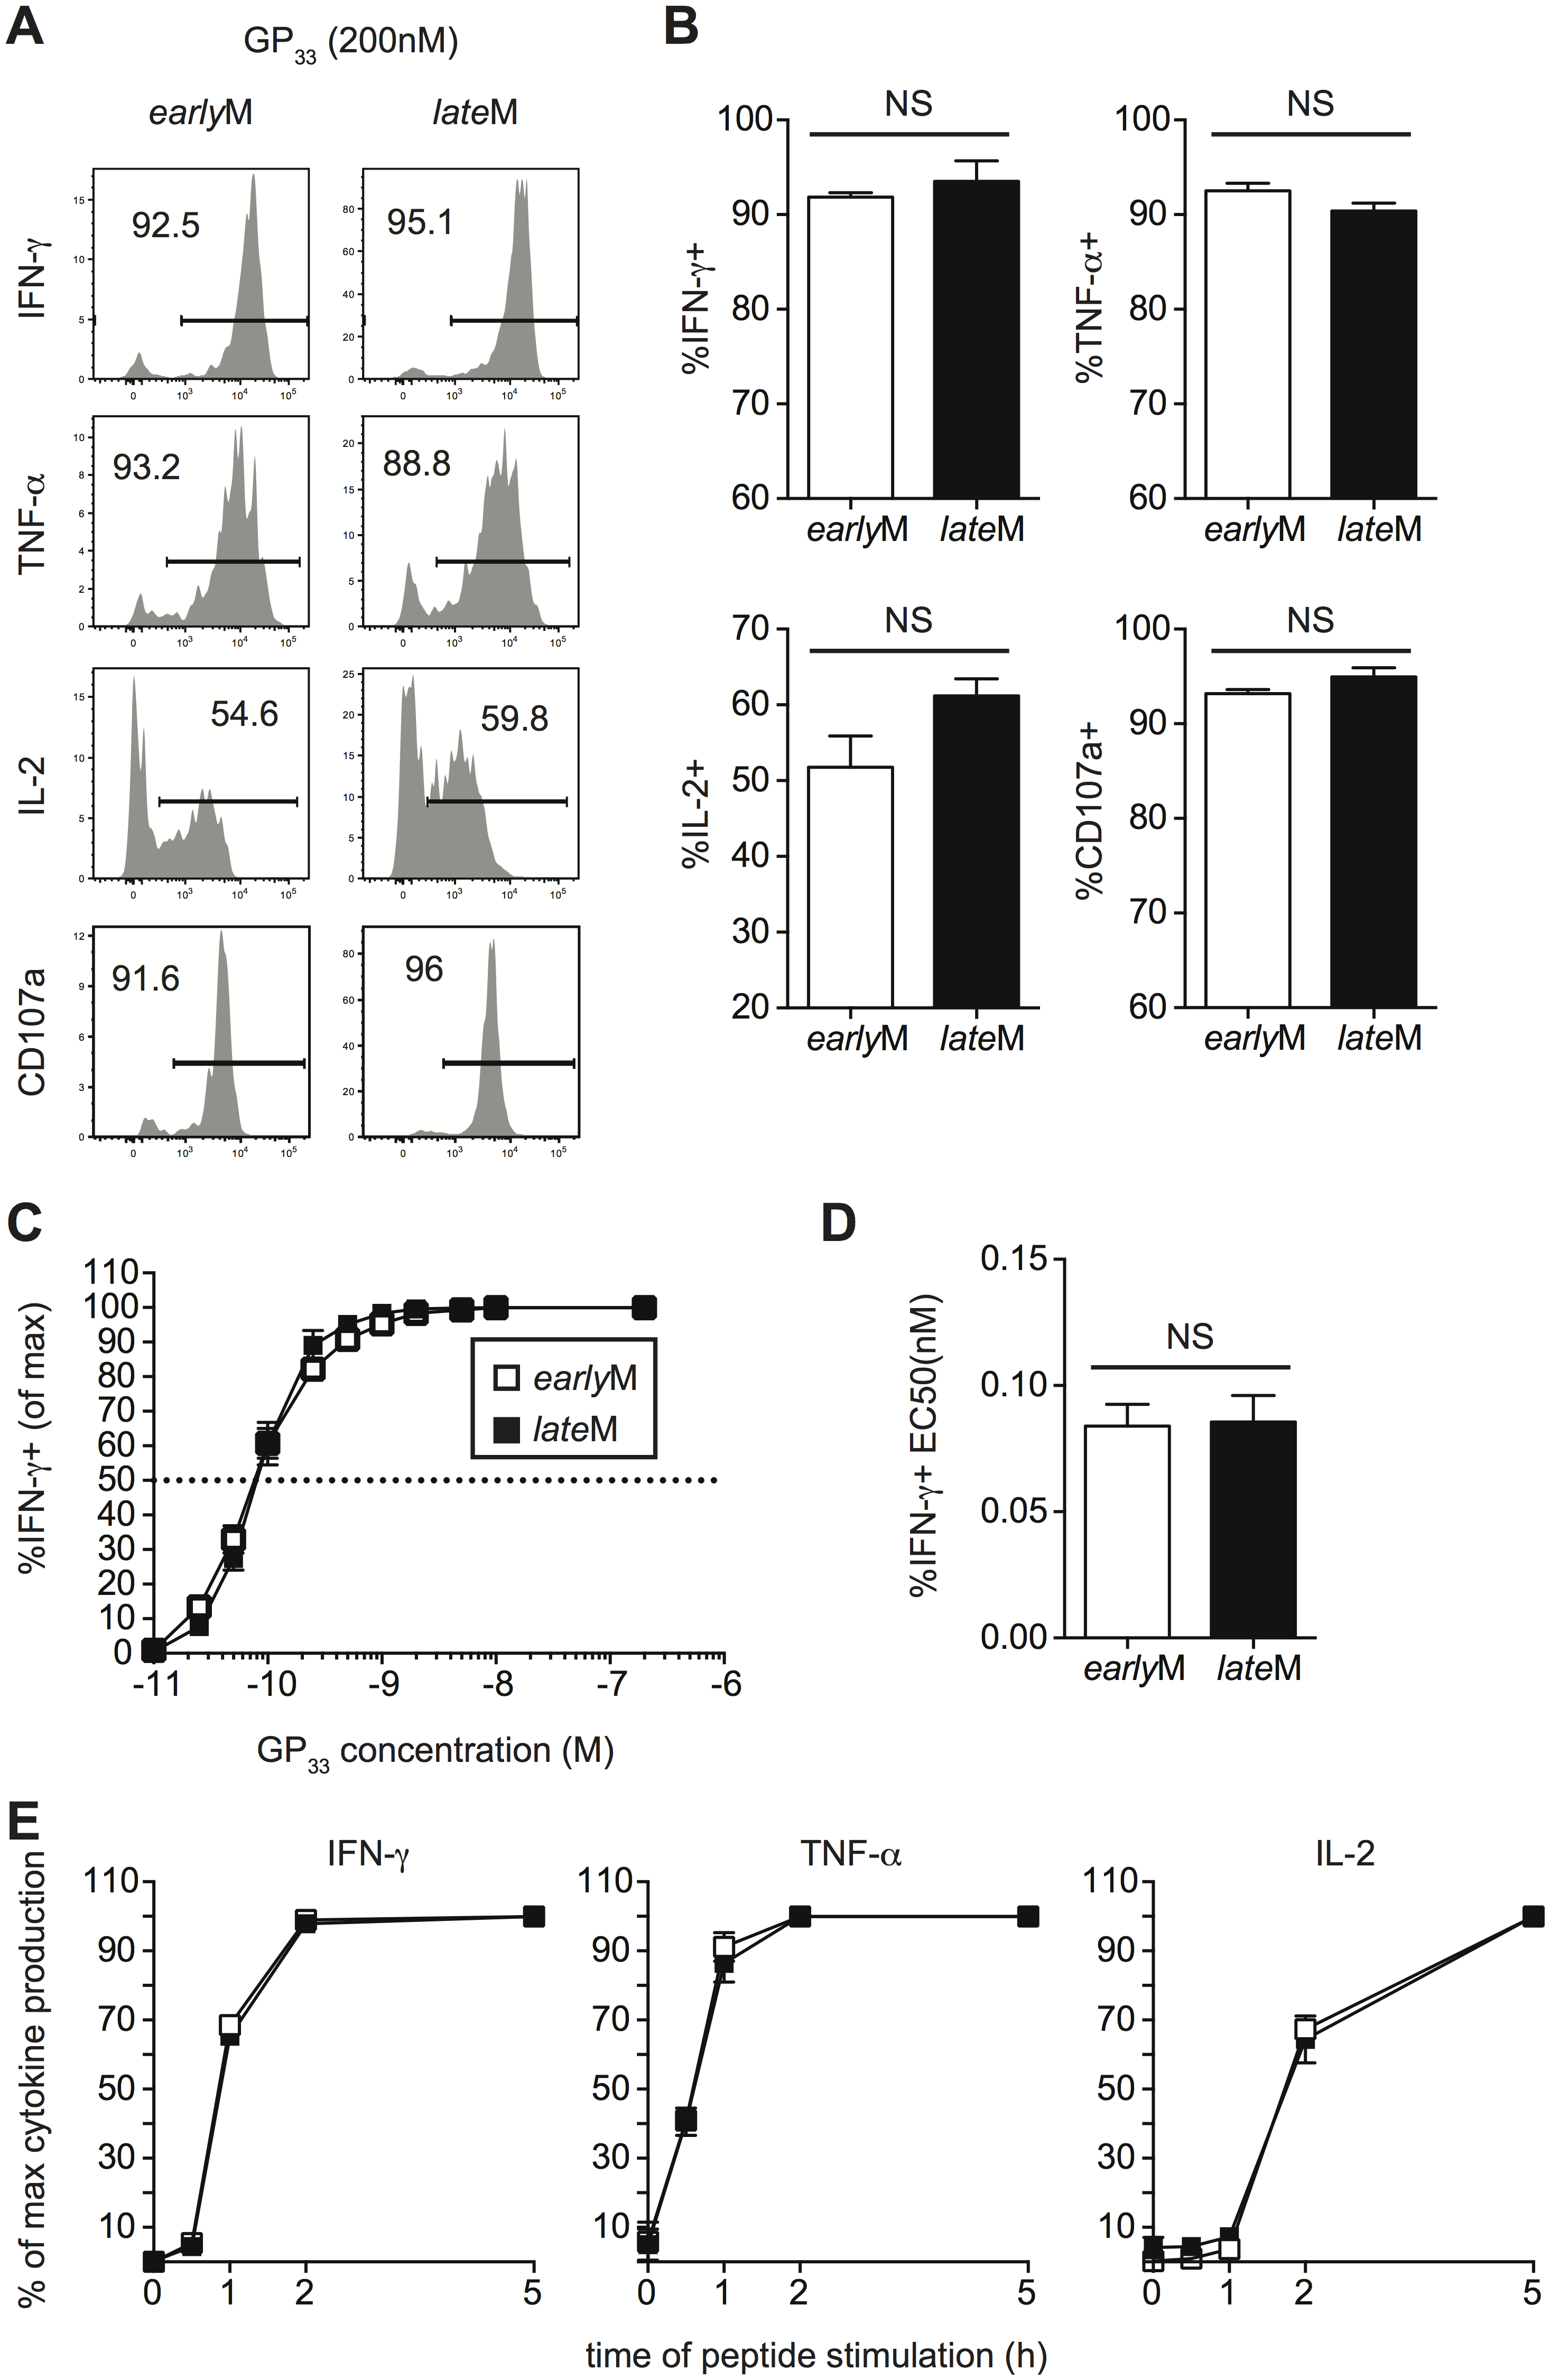 Cytokine production, degranulation, and functional avidity, of CD62Lhi memory are not influenced by time.